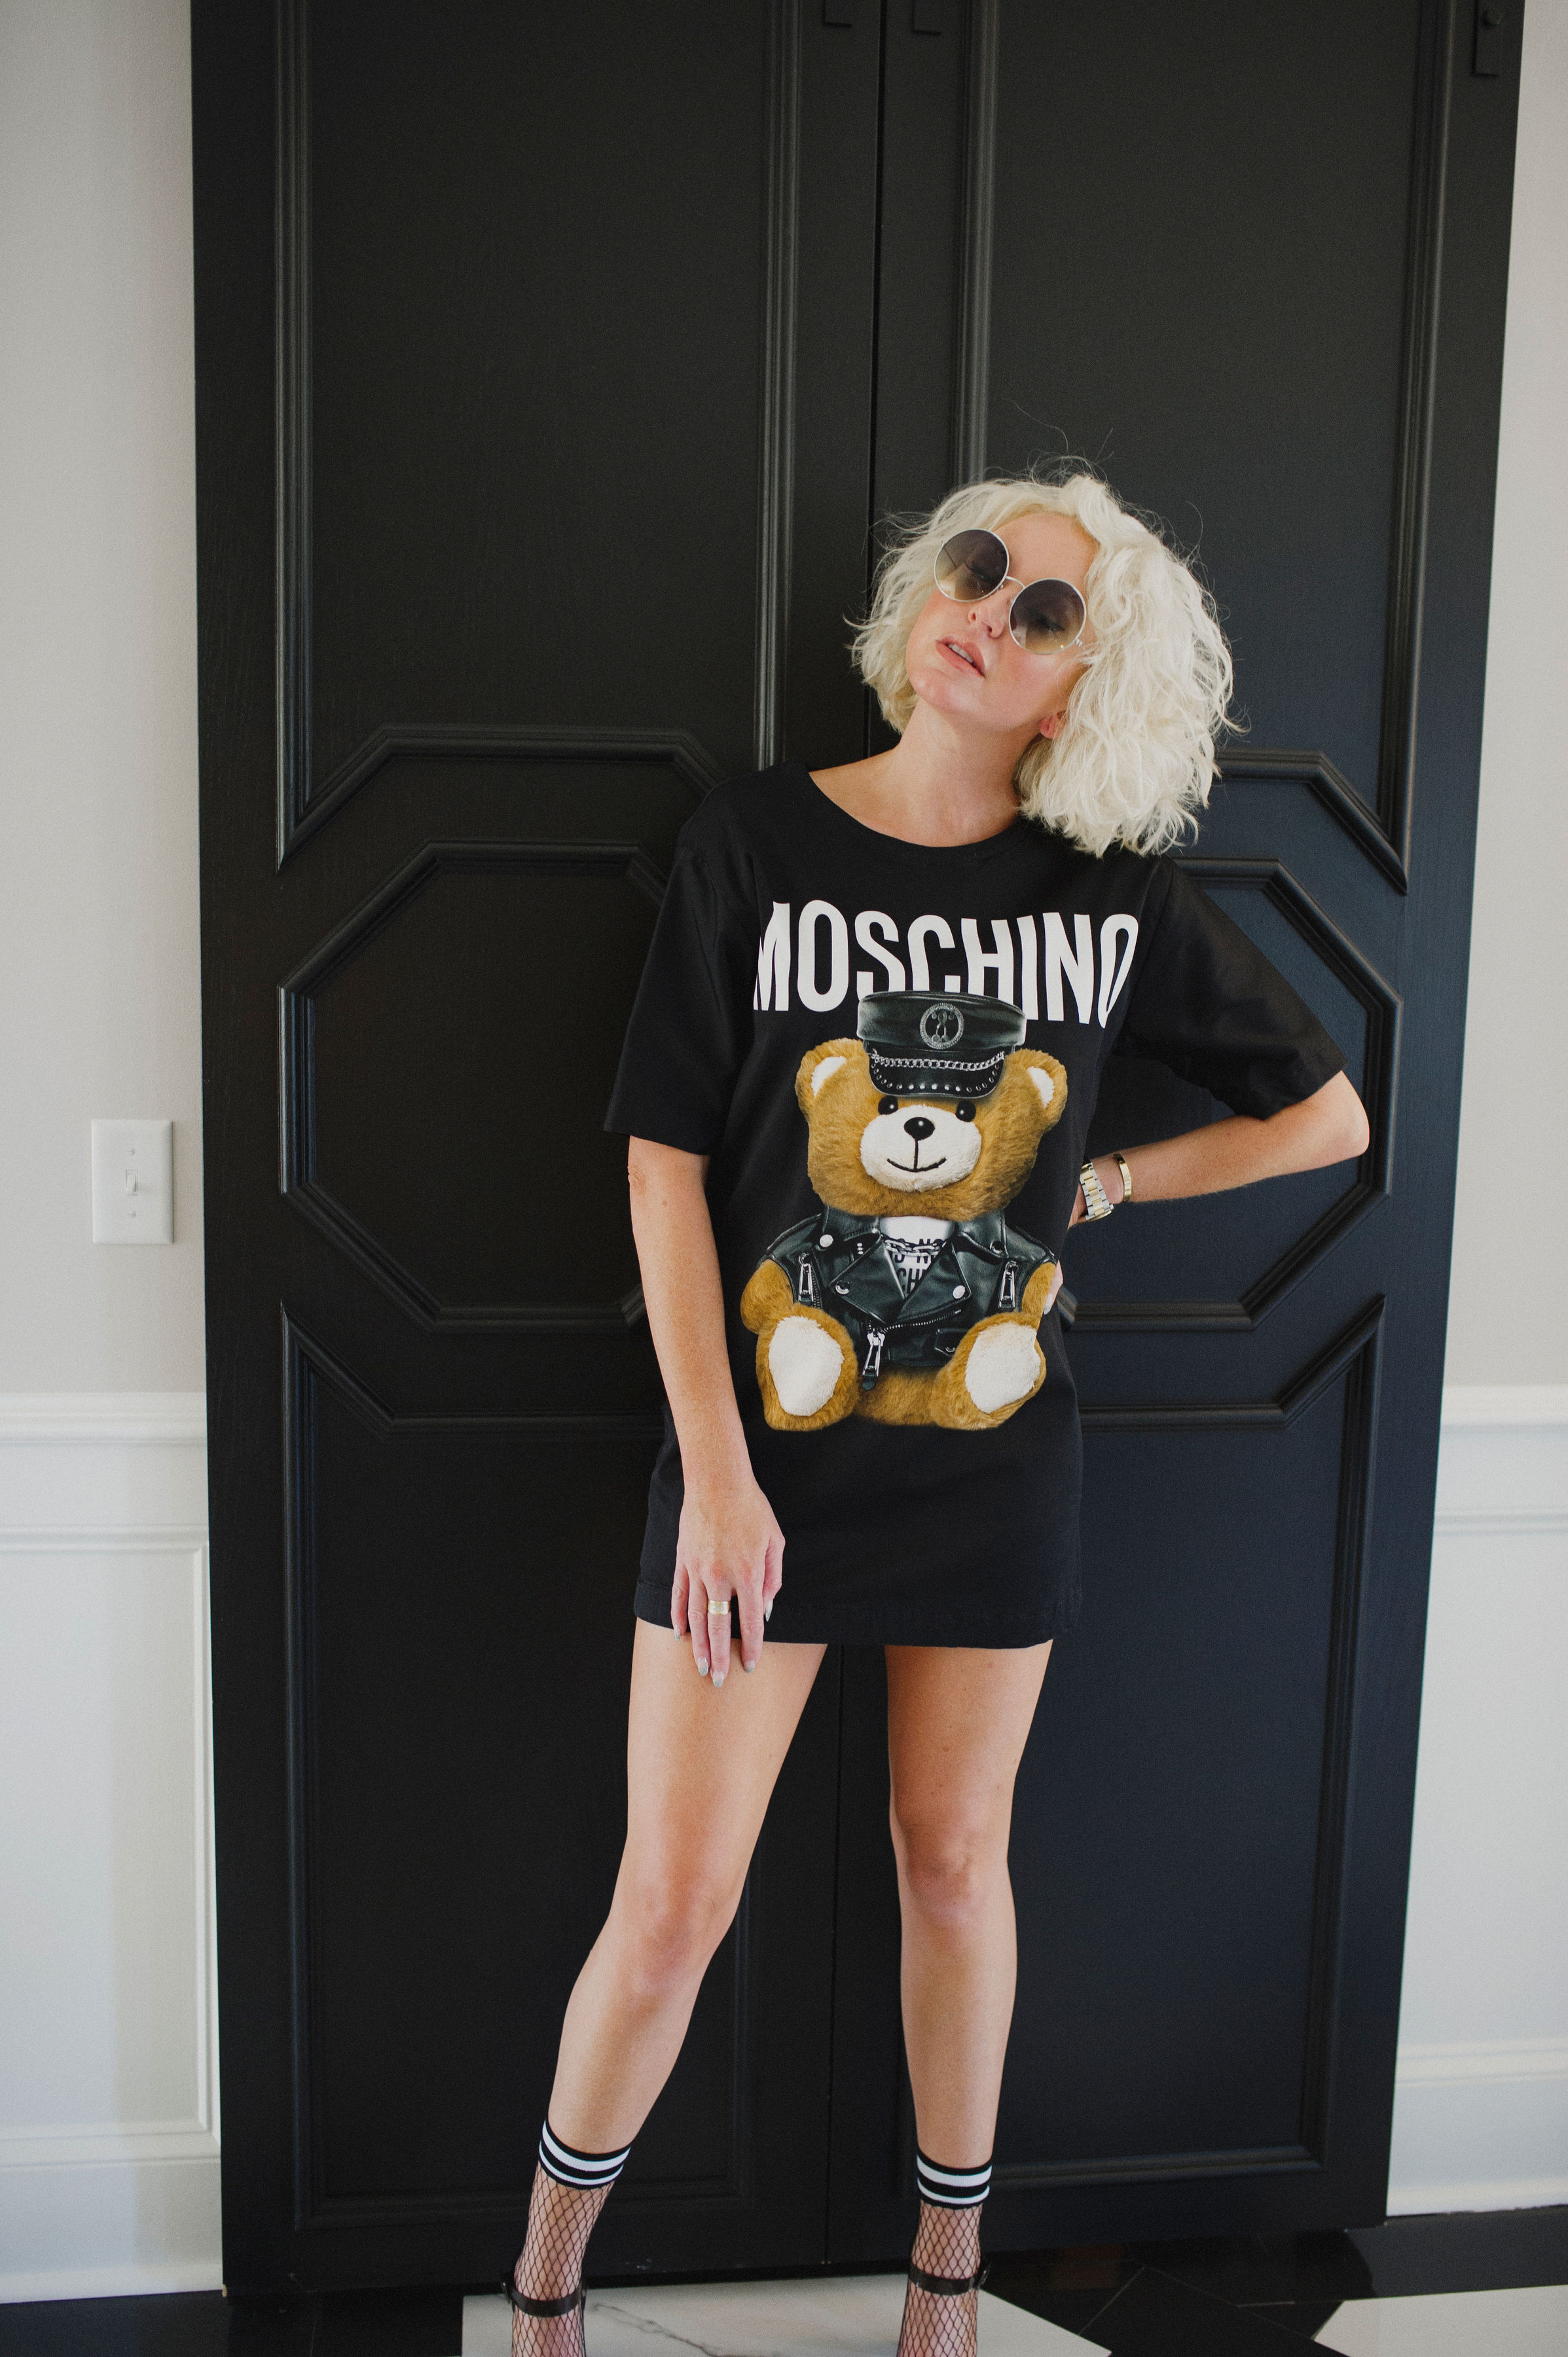 "This Moschino t-shirt dress was captured while on a hunt in New York. - Chris found it randomly on a rack of designer pieces at Century 21. He picked up and said, ""Lyv this looks weird and right up your alley."" And I said, ""IT IS! I loved it.""At the time I didn't have any Moschino pieces in my closest. I had always admired how eccentric Moschino garments can be especially under the direction of their creative director Jeremy Scott. There's an excellent Netflix documentary about him and his journey in the fashion industry and within Moschino."